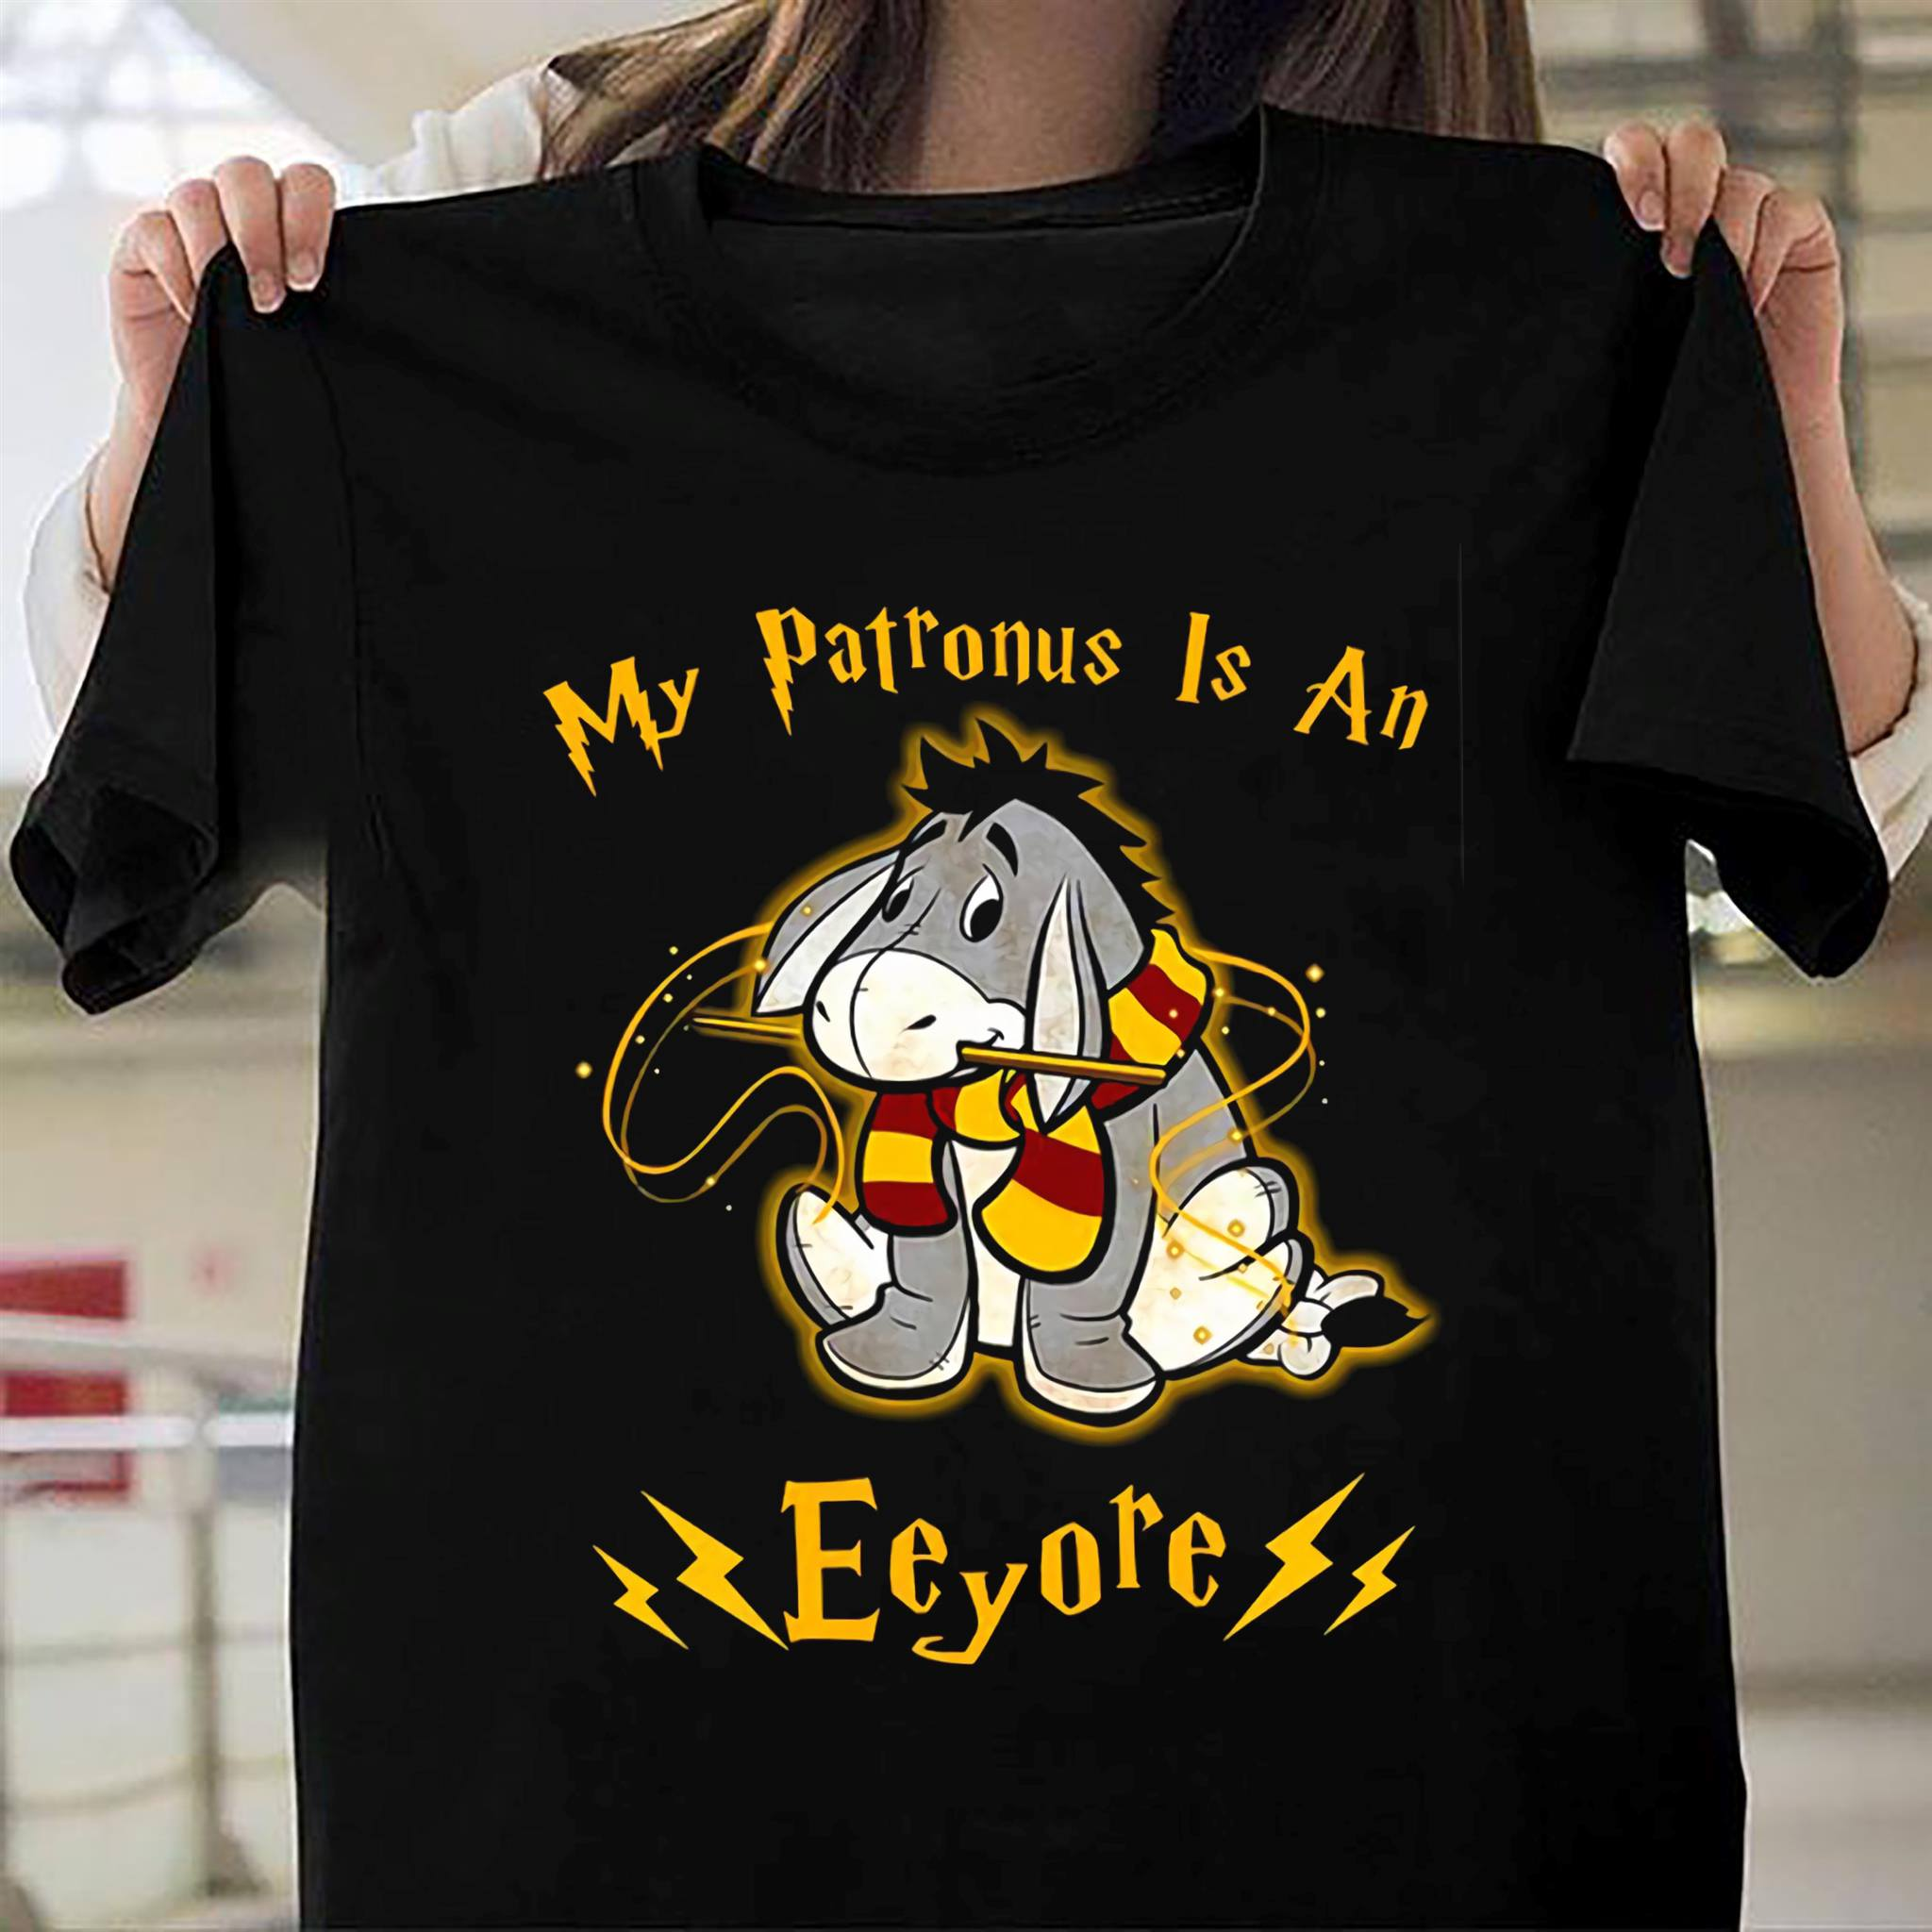 My Patronus is an Eeyore shirt